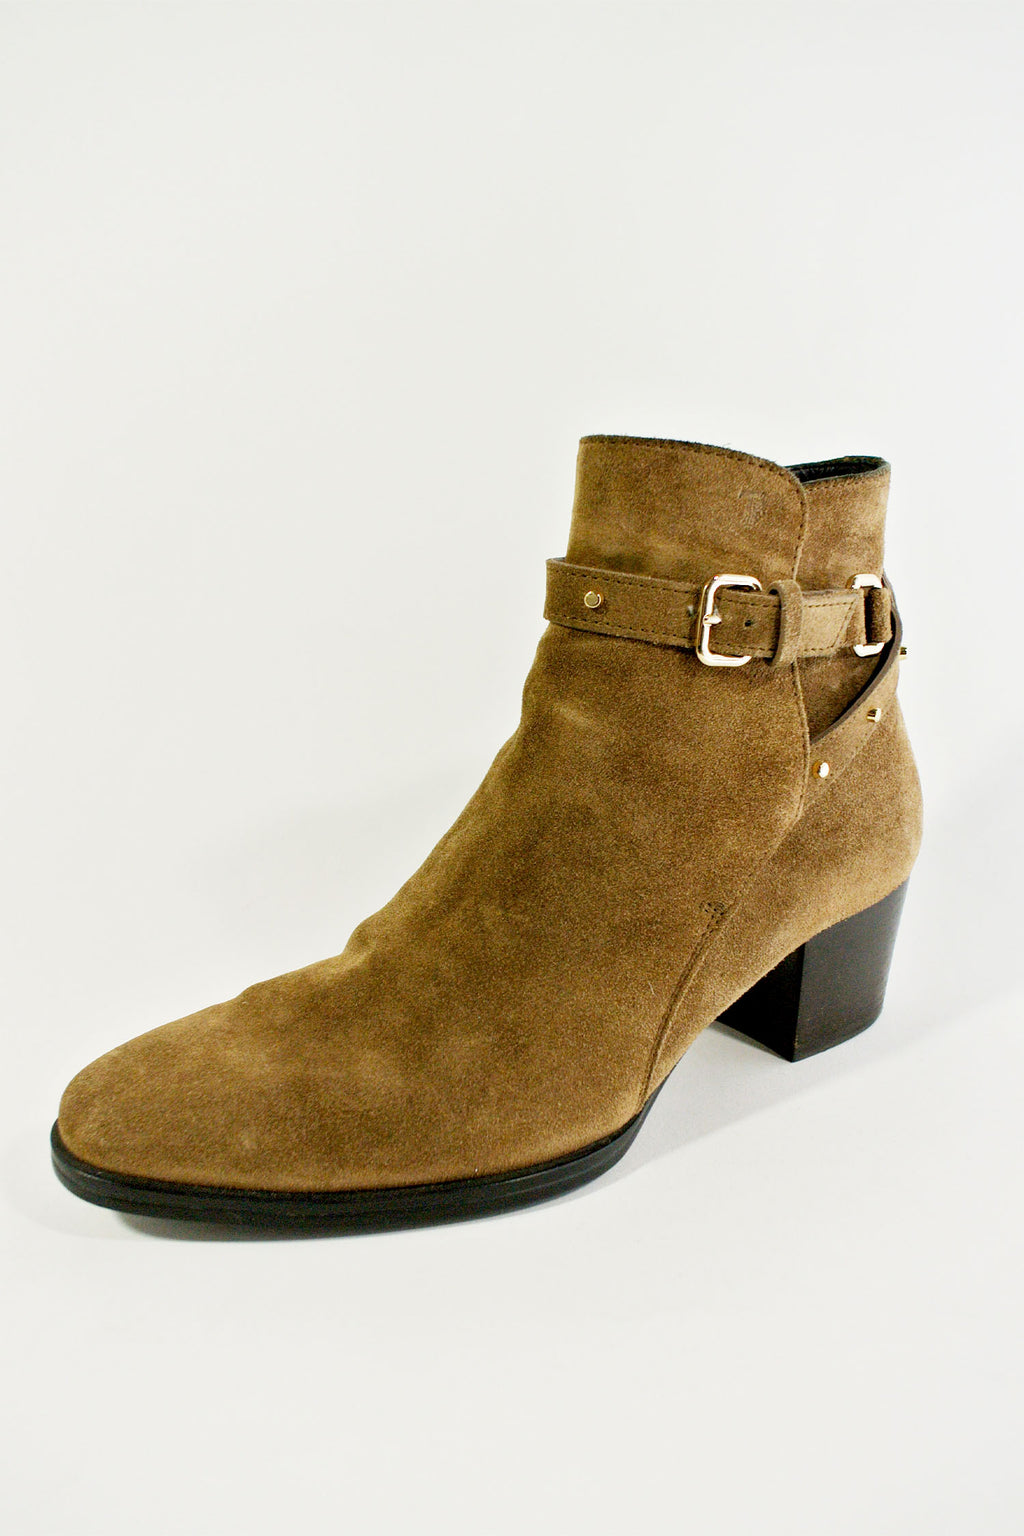 Tods Suede Ankle Booties Sz 37